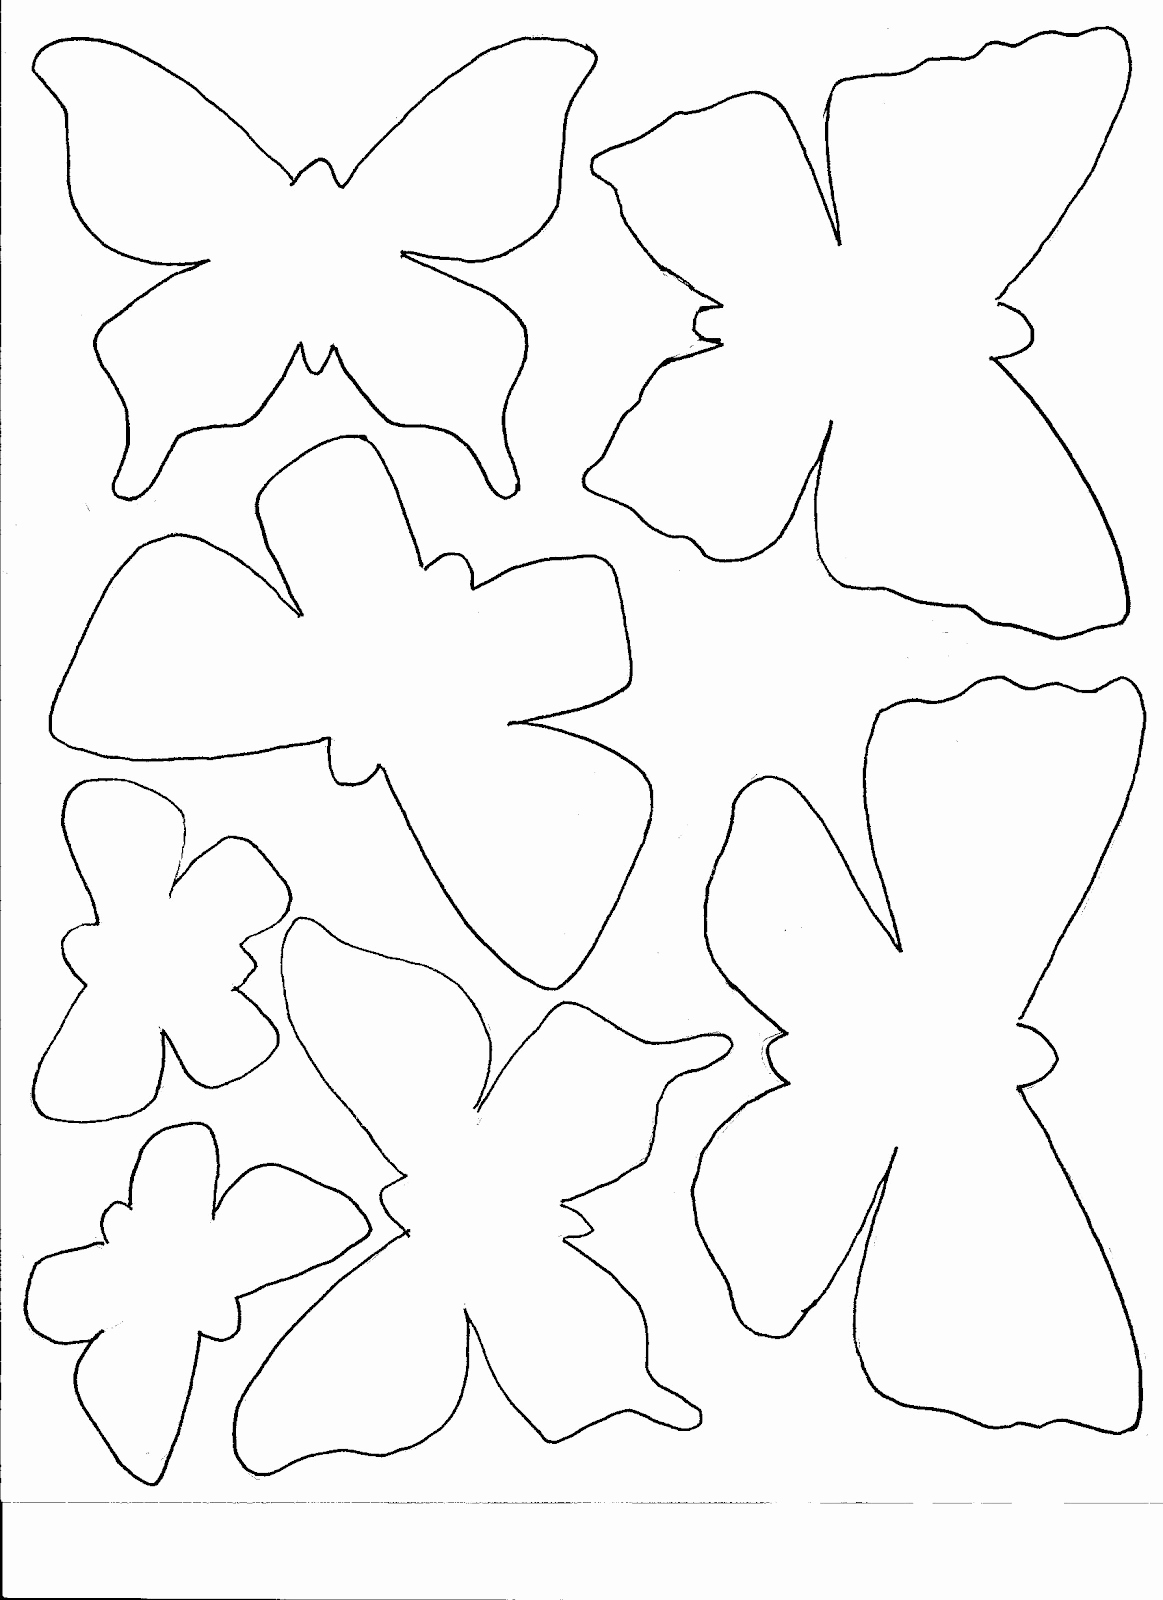 Paper Cut Outs Templates Elegant Amy S Etcetera Masks for Gelli Printing